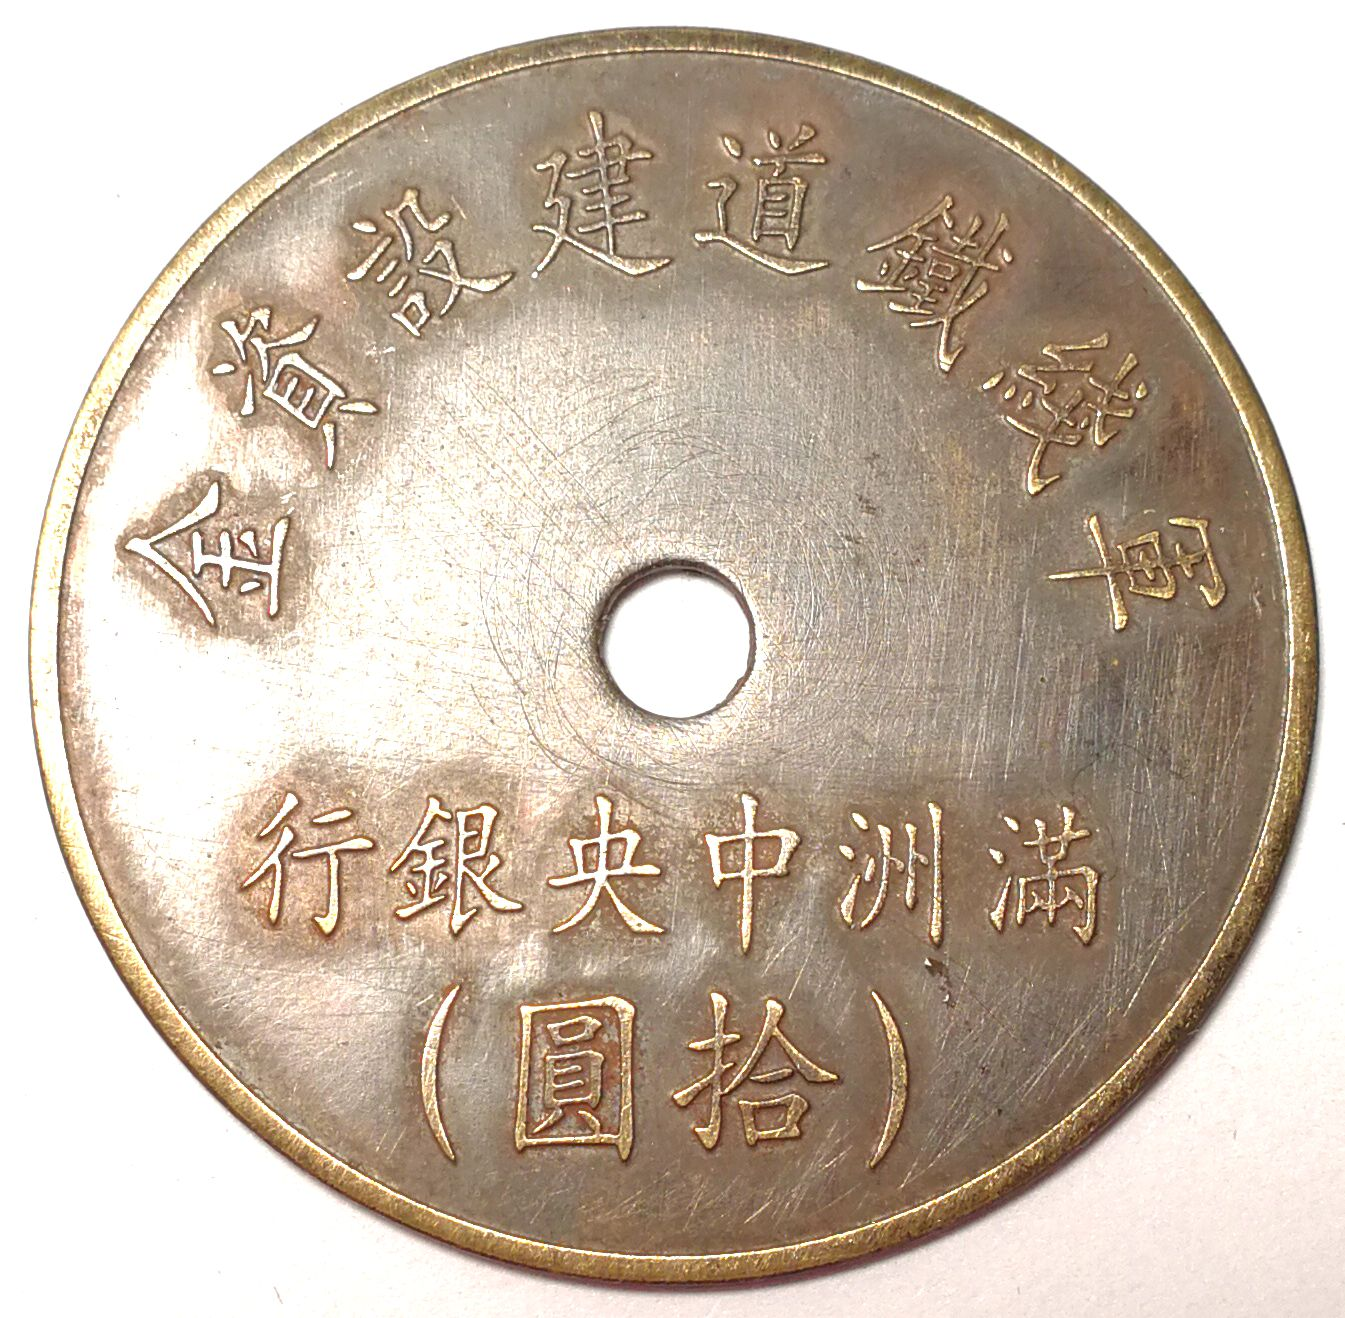 BT576, Army Line Railway Fund of Manchukuo, Token Bond, 10 Yen 1944